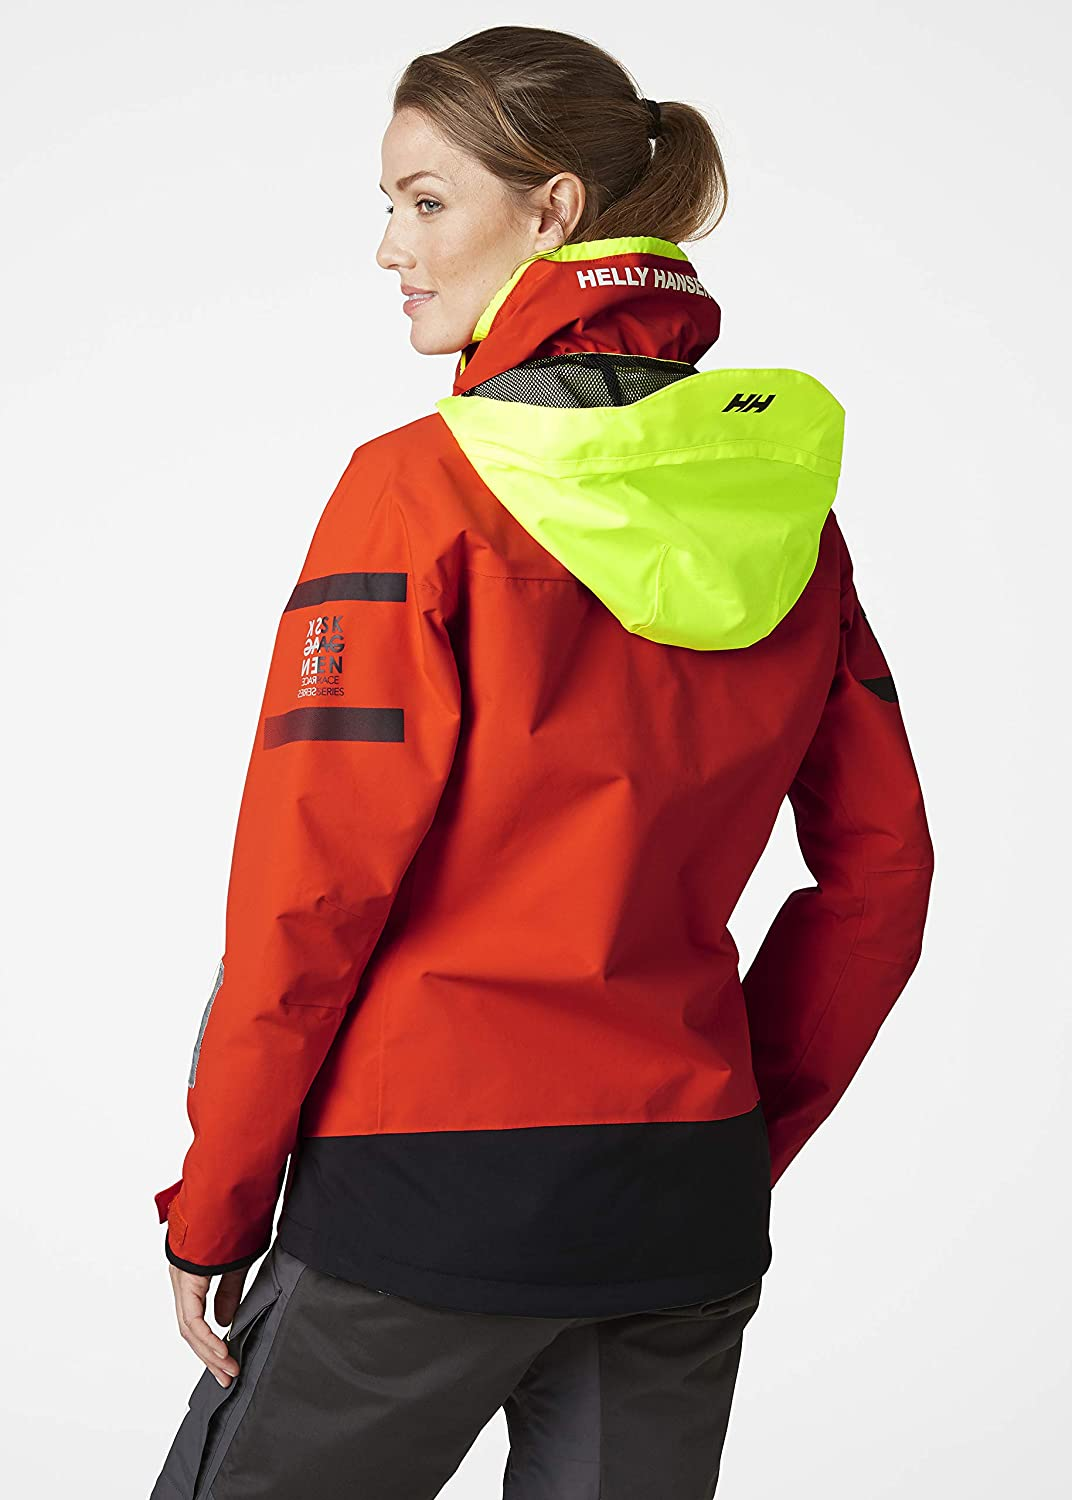 Quick Dry Helly Hansen Mens Skagen Offshore Sailing Yachting and Dinghy Coat Jacket Cherry Tomato